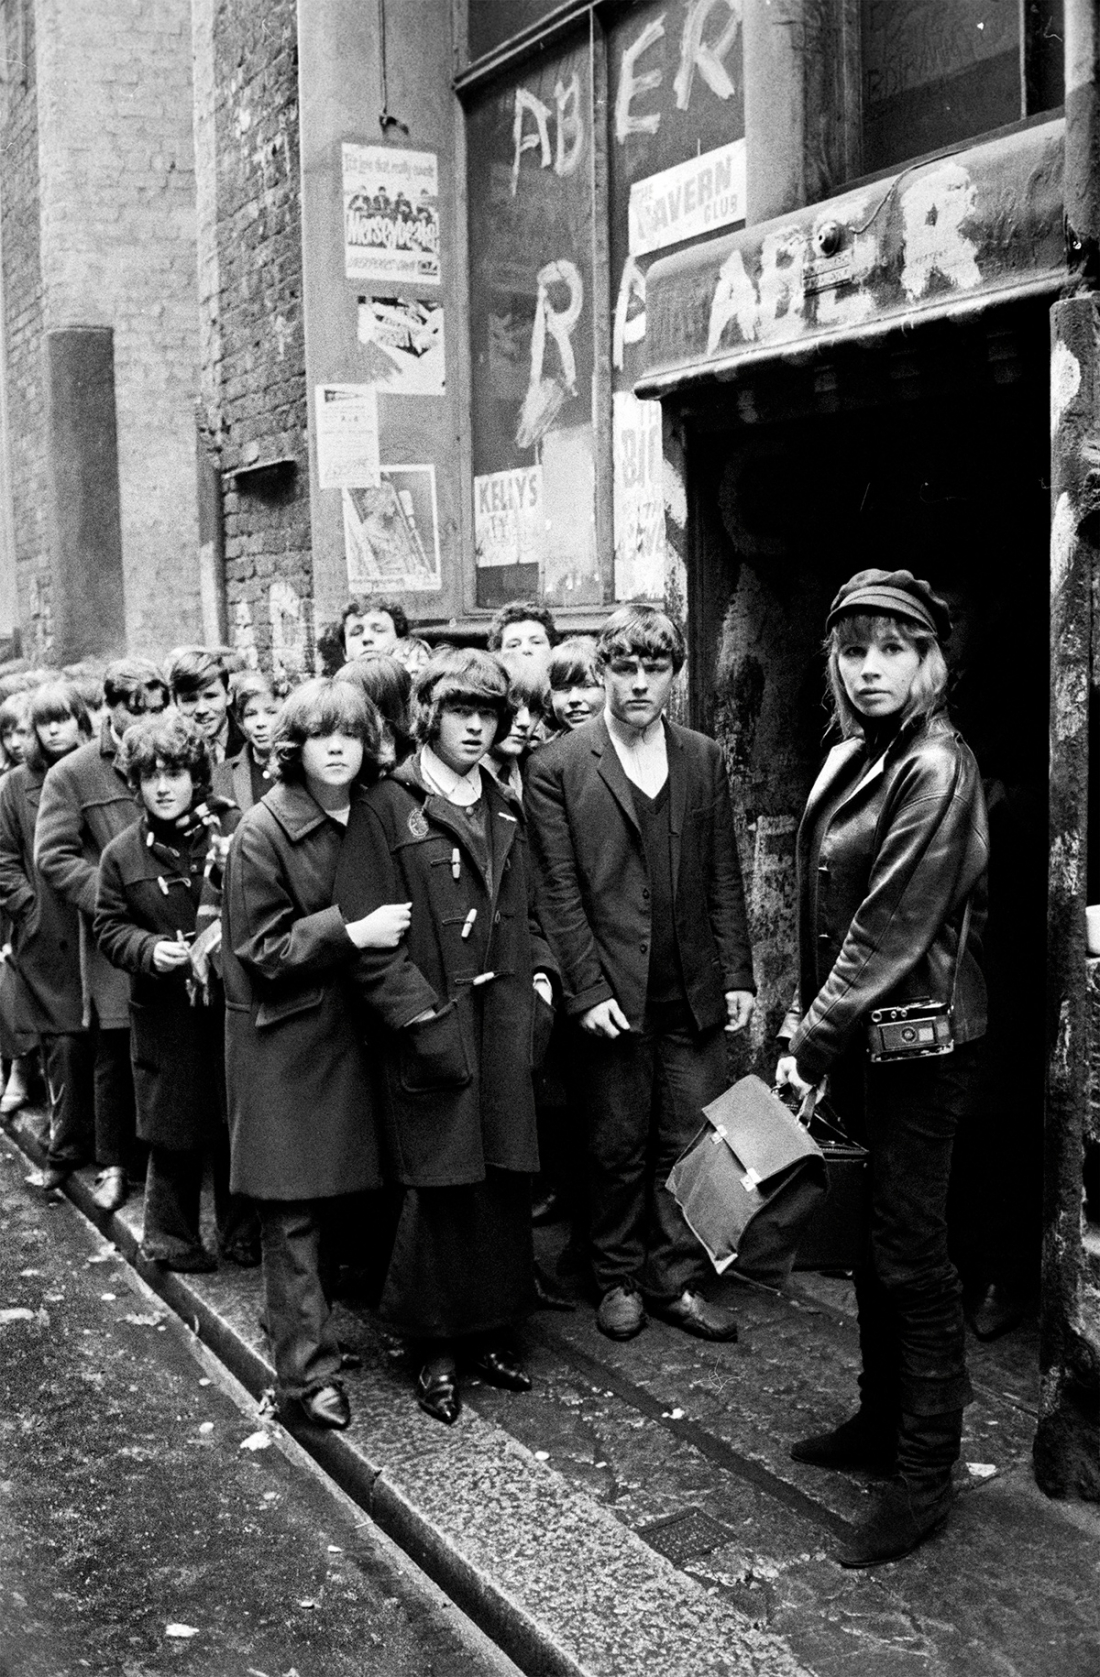 Max Scheler, Astrid Kirchherr in front of the Cavern Club, 1964